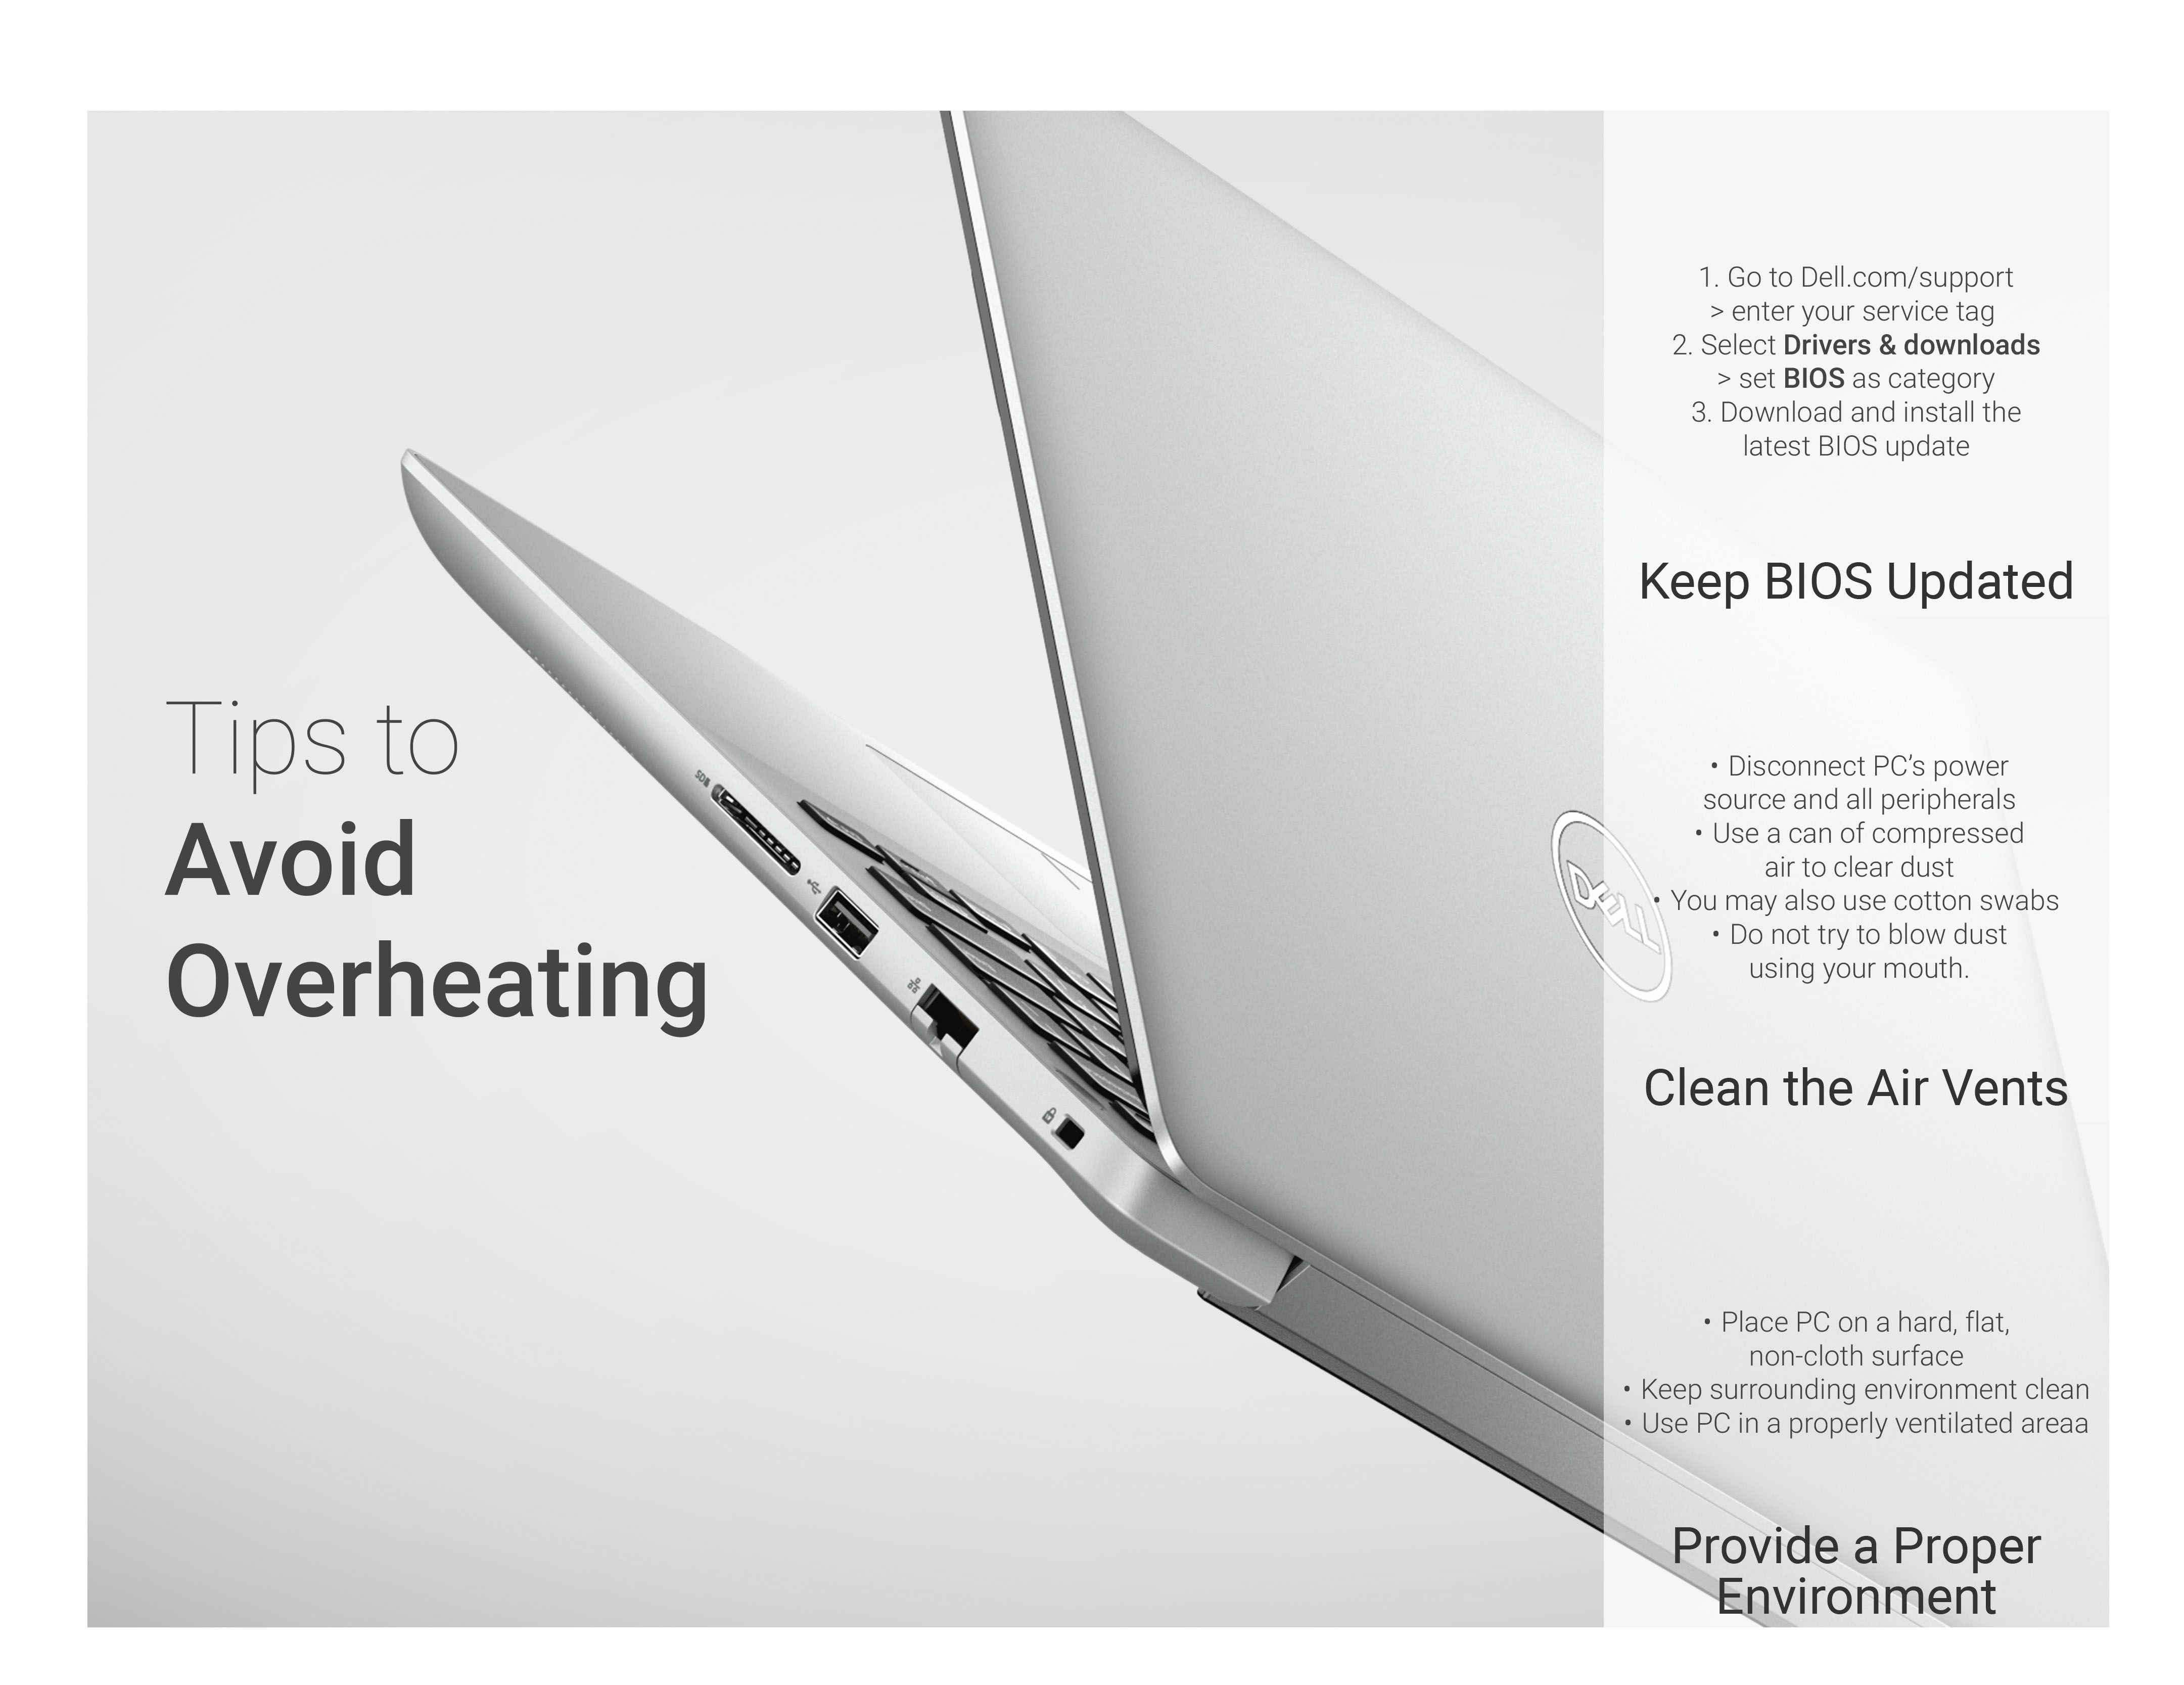 Overheating your #Dell laptop can cause hardware failures or other